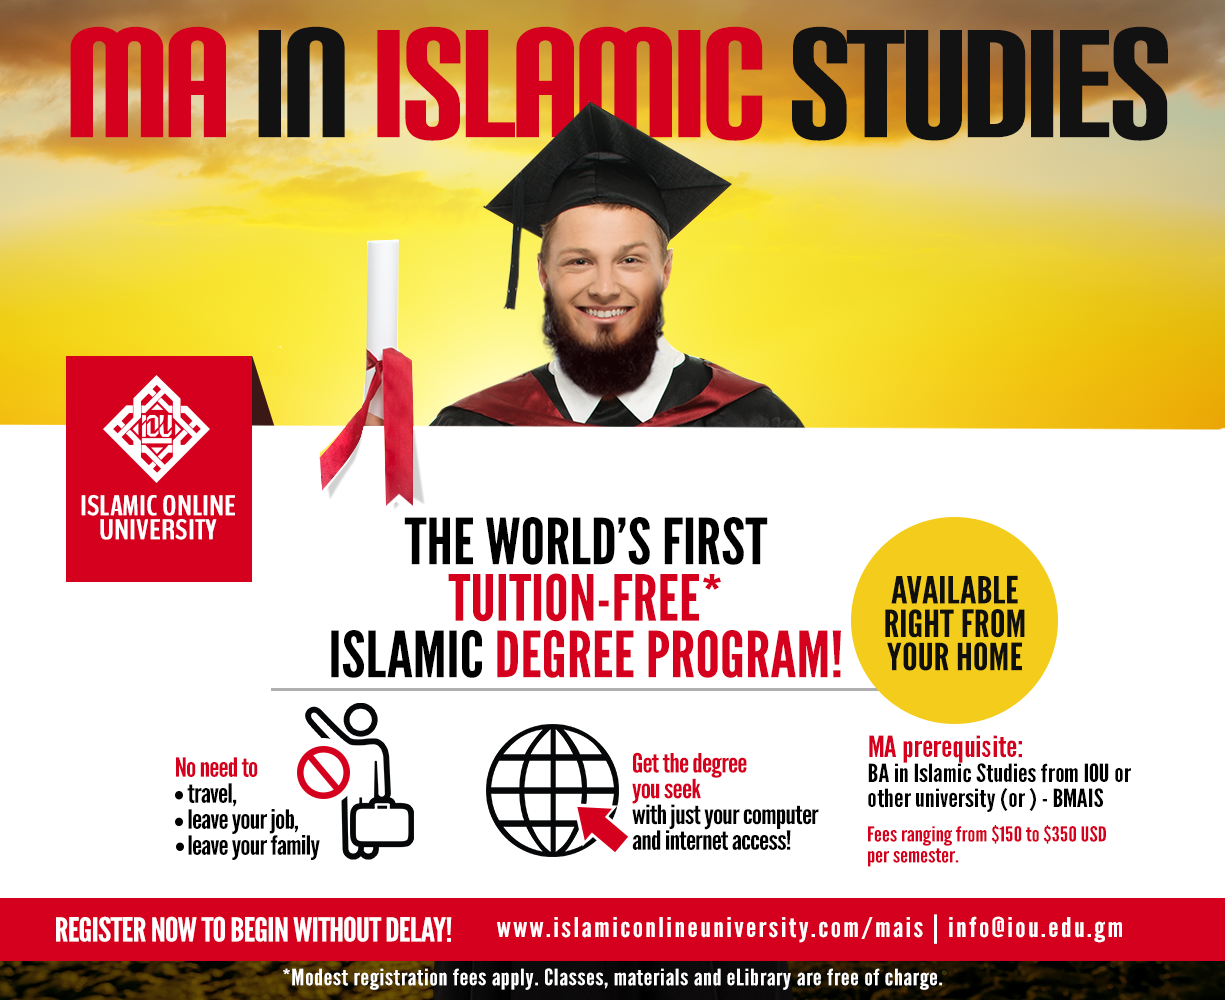 Islamic Online University offers the world's first tuition